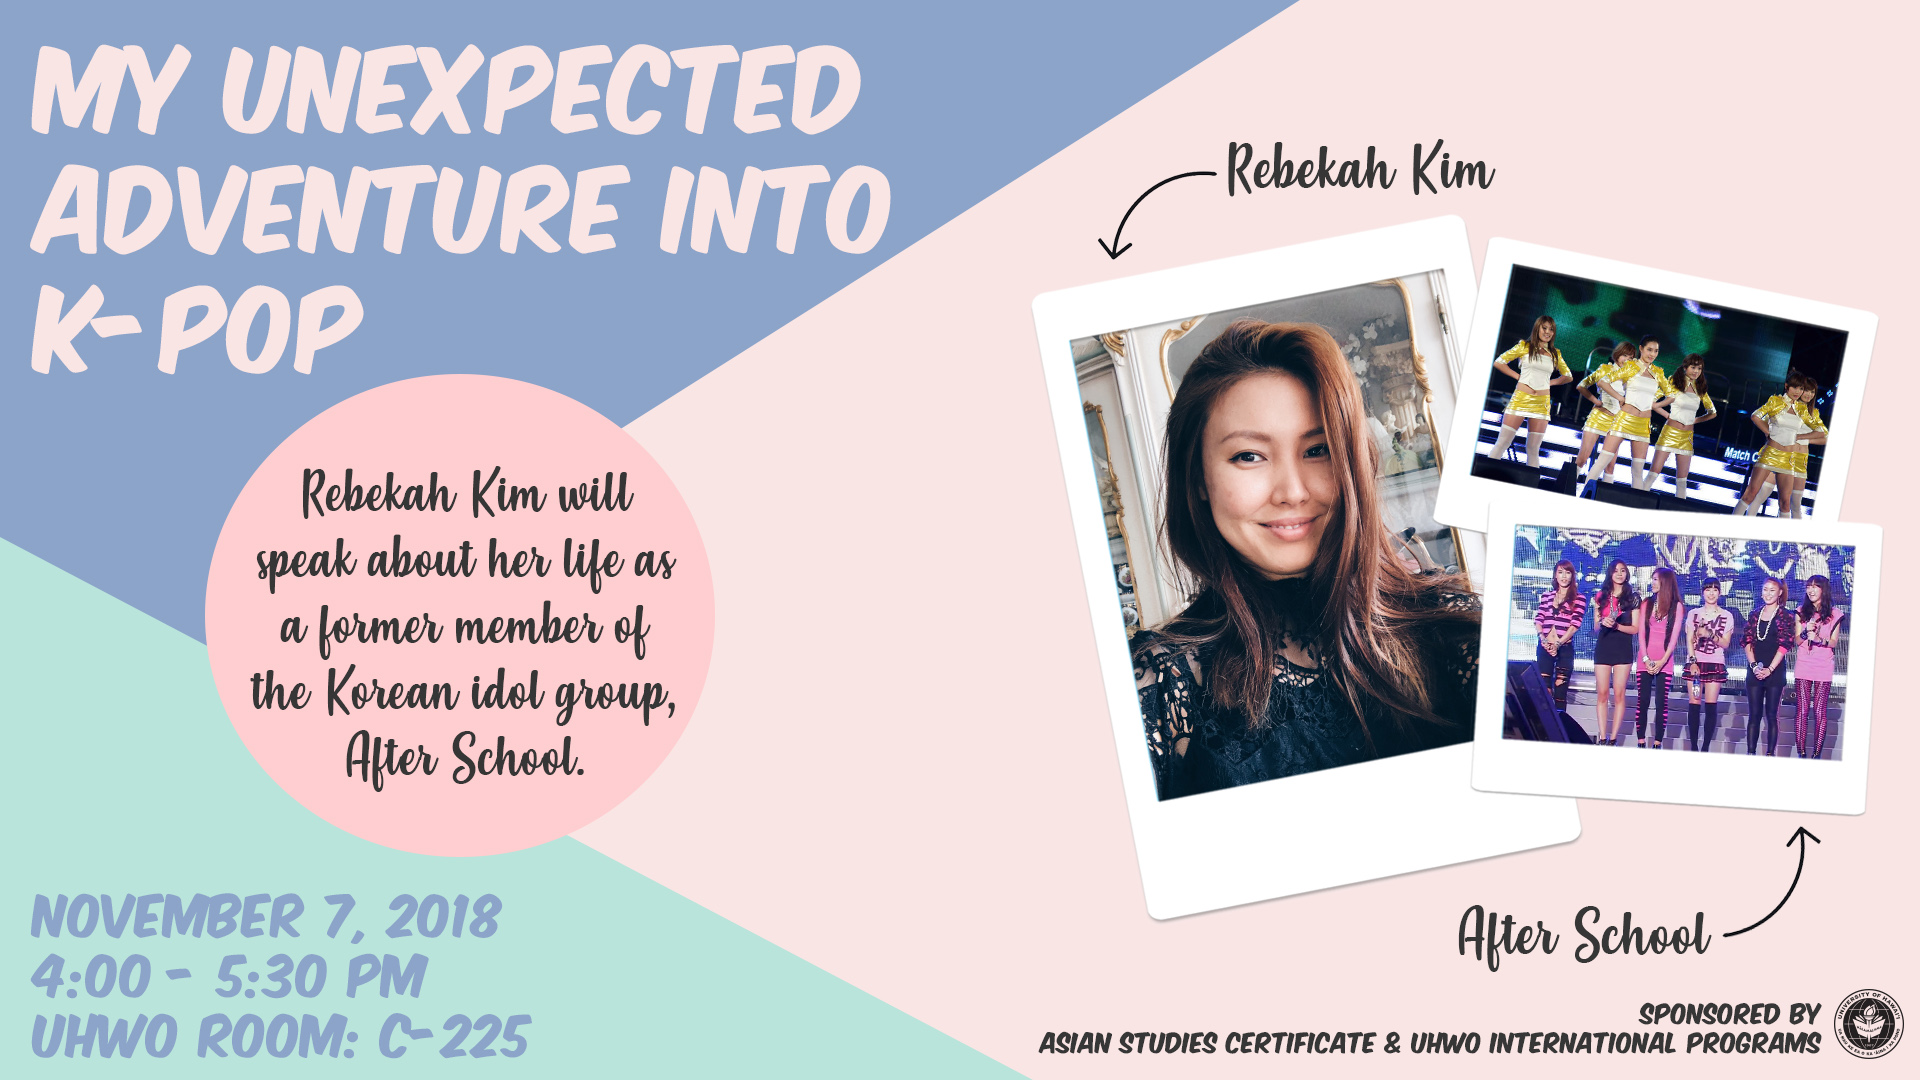 Former Korean Pop Star Rebekah Kim is giving a talk about her life as a pop star at the University of Hawaii West Oahu Campus on Wednesday, November 7.